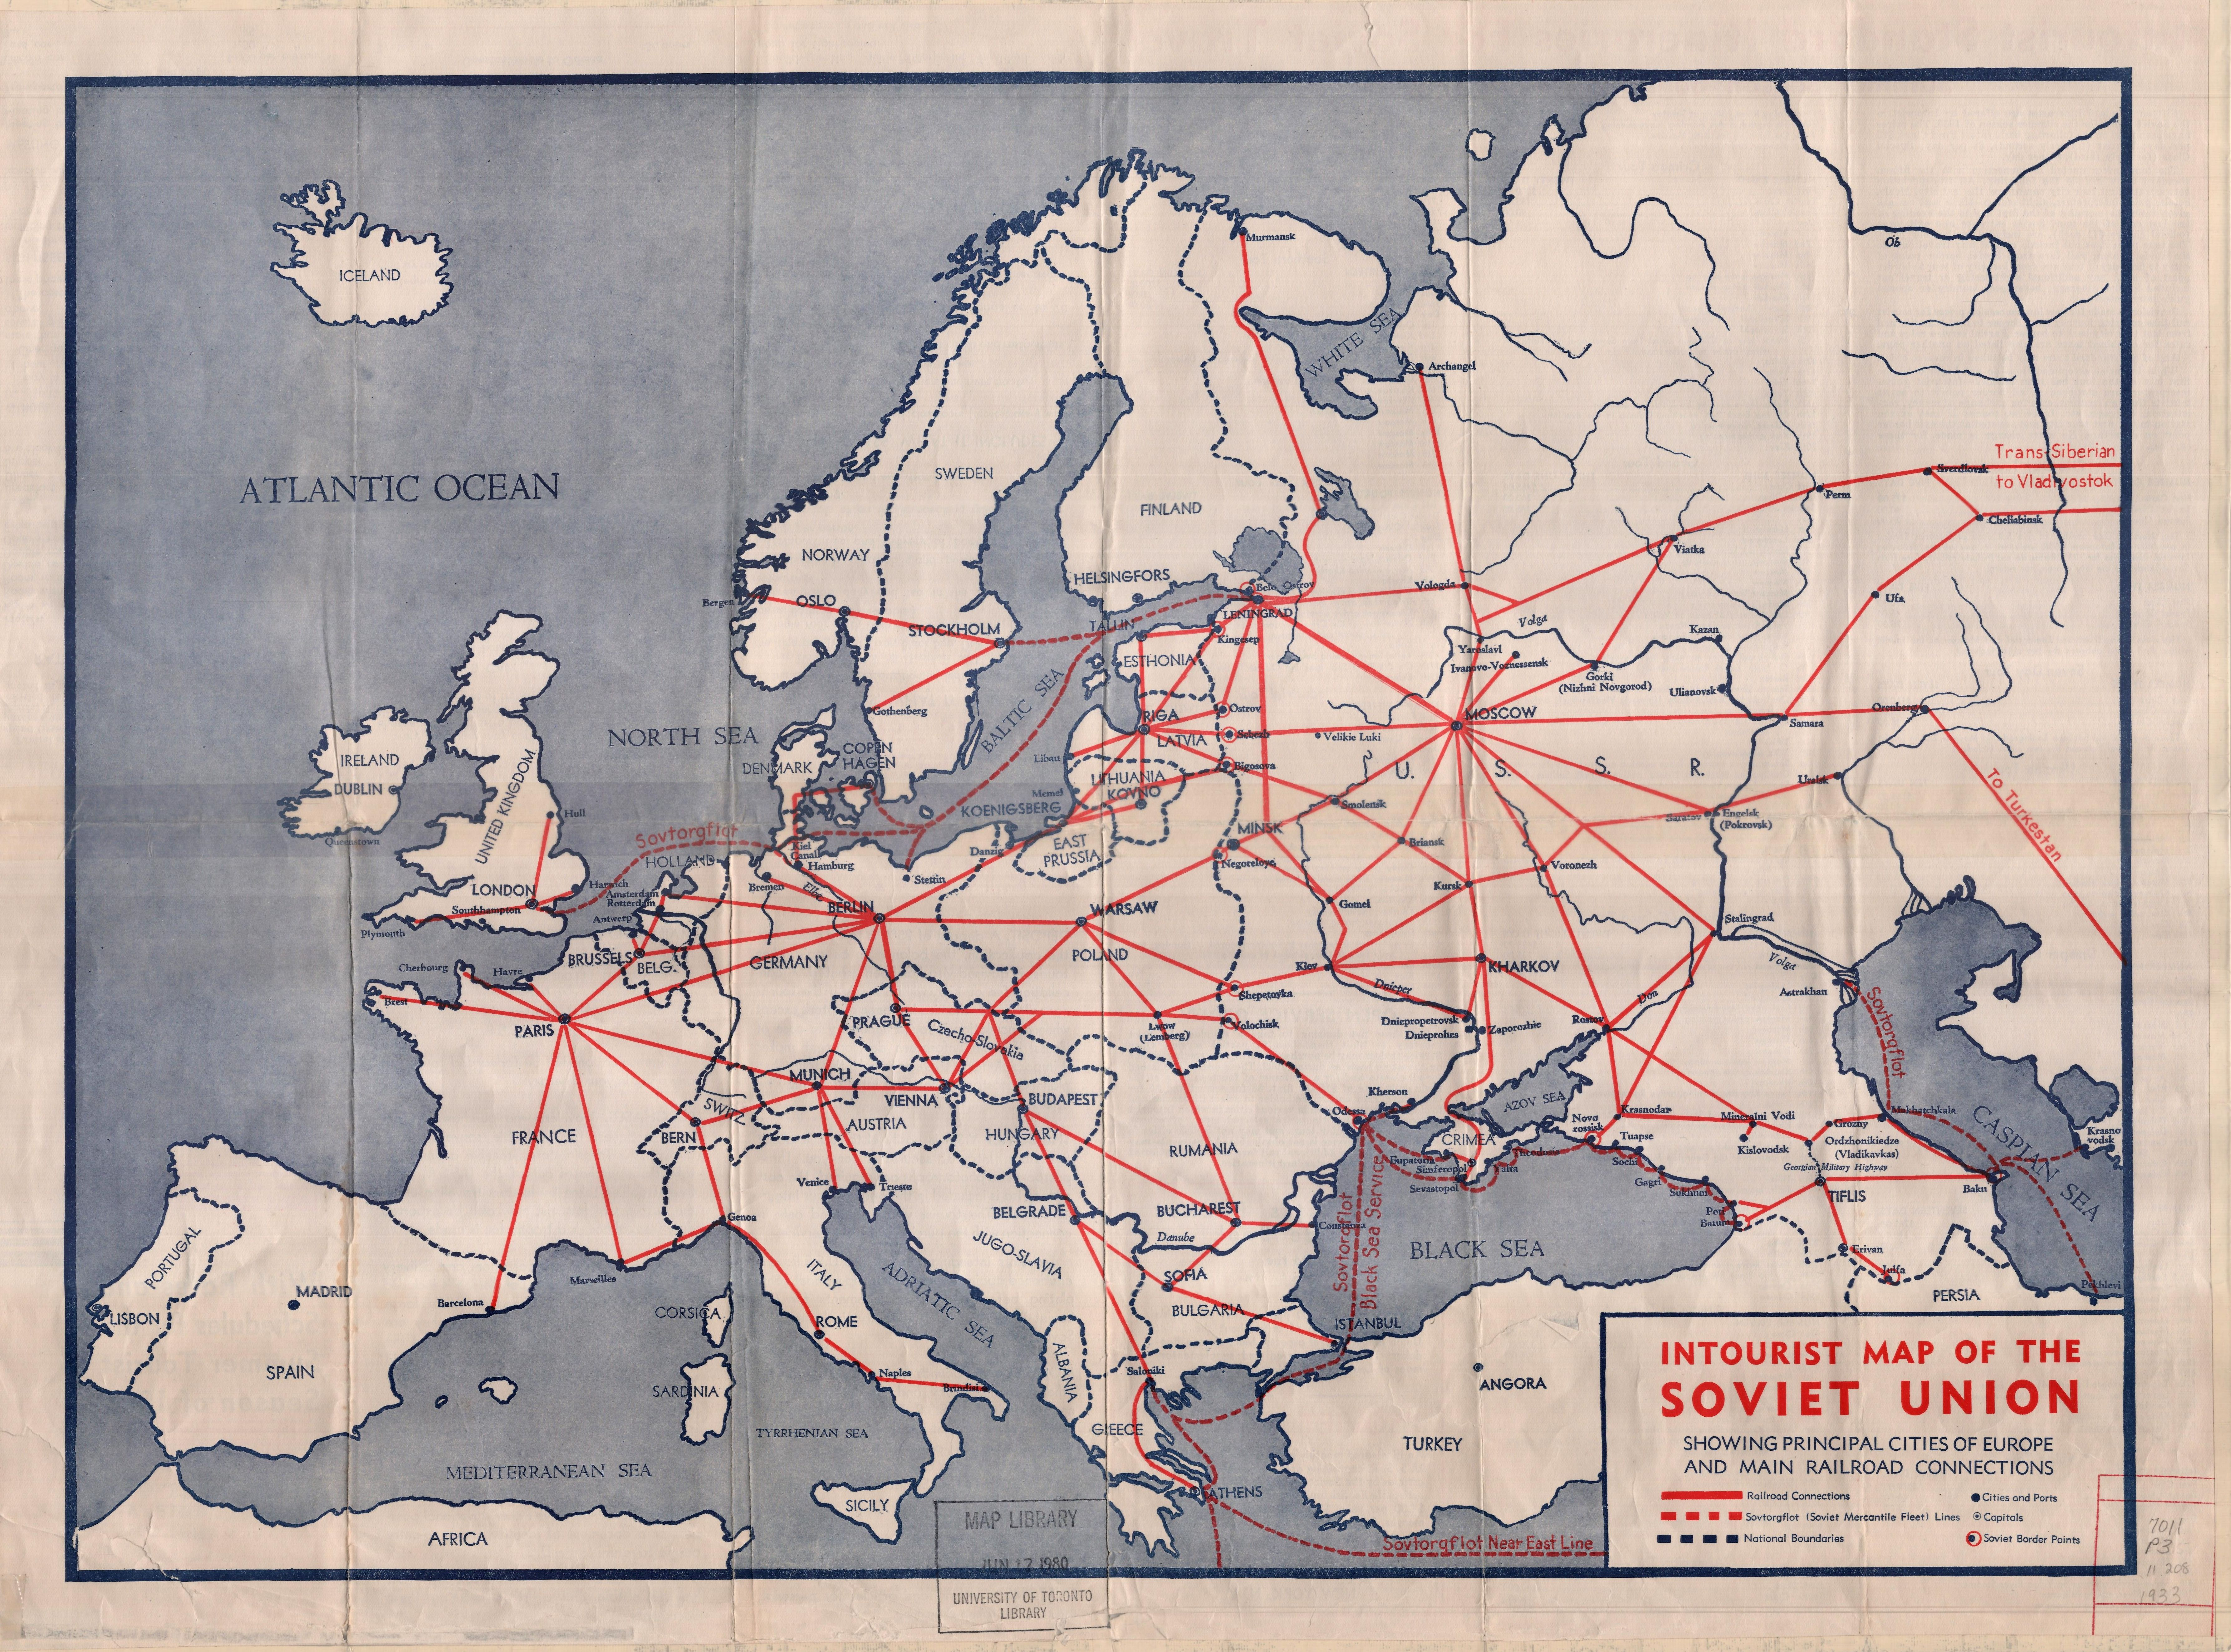 1933 Map Of Europe.Intourist Map Of The Soviet Union Showing Principal Cities Of Europe